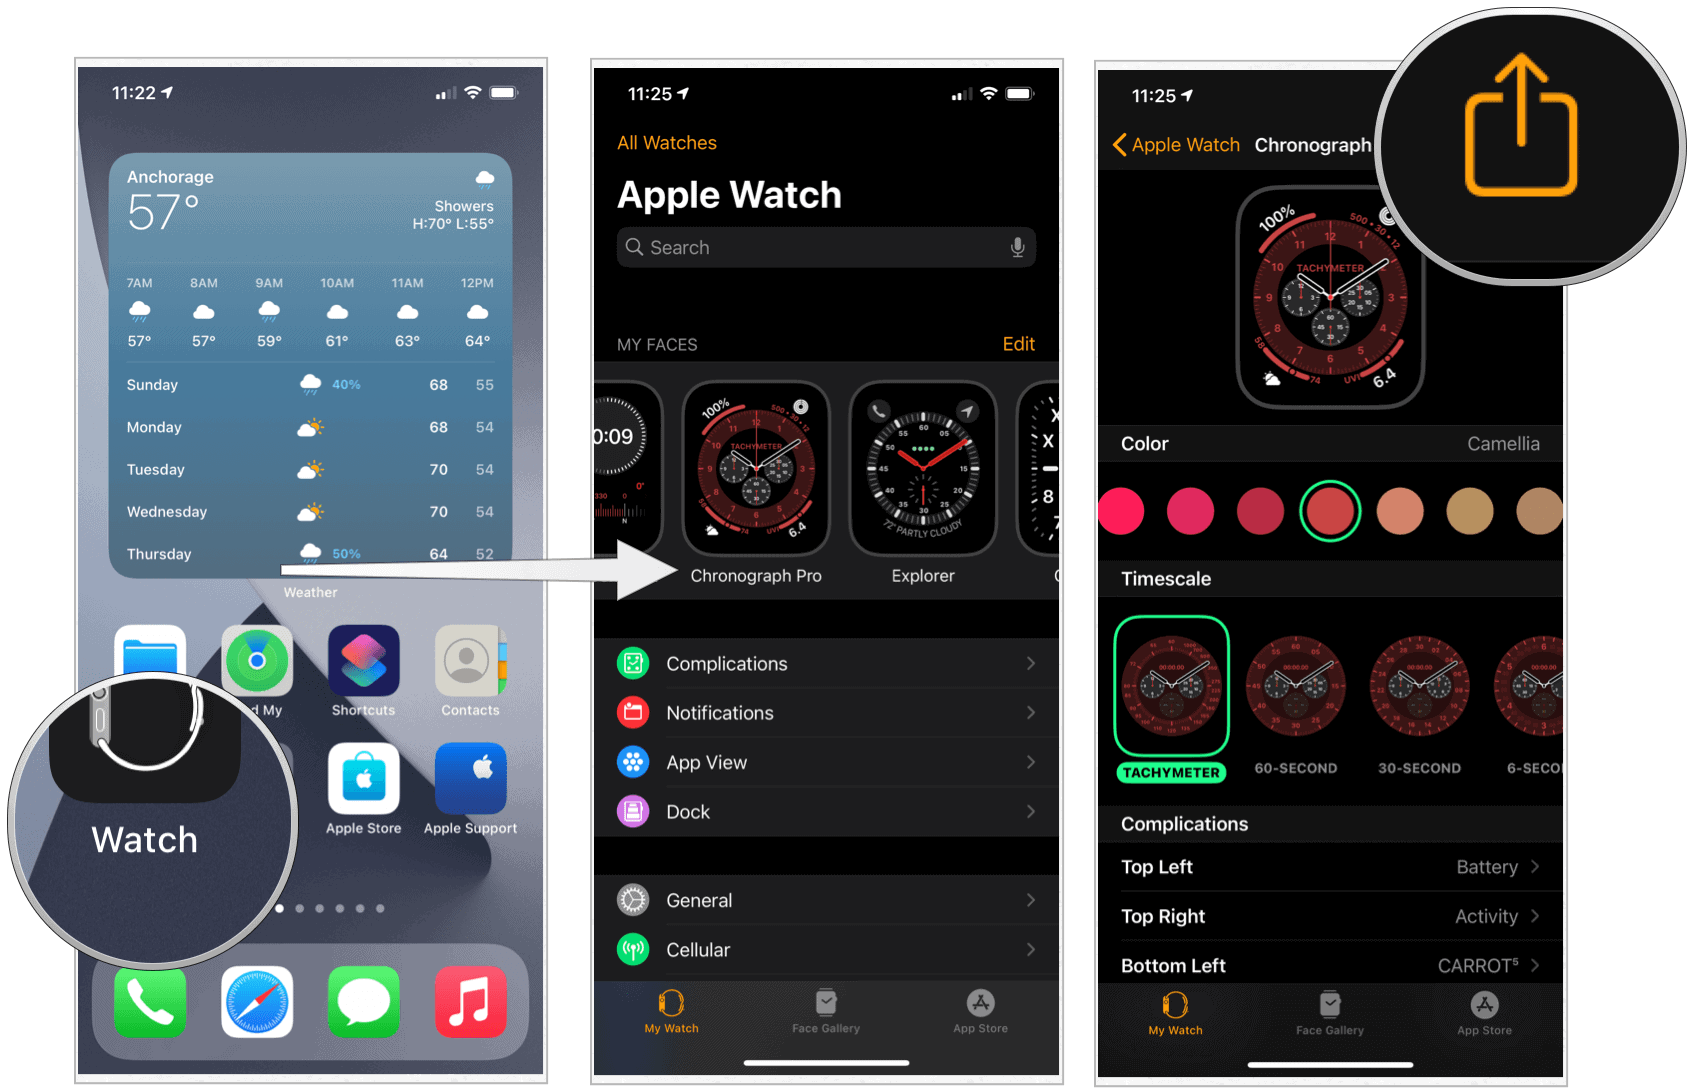 Share Watch faces on iPhone